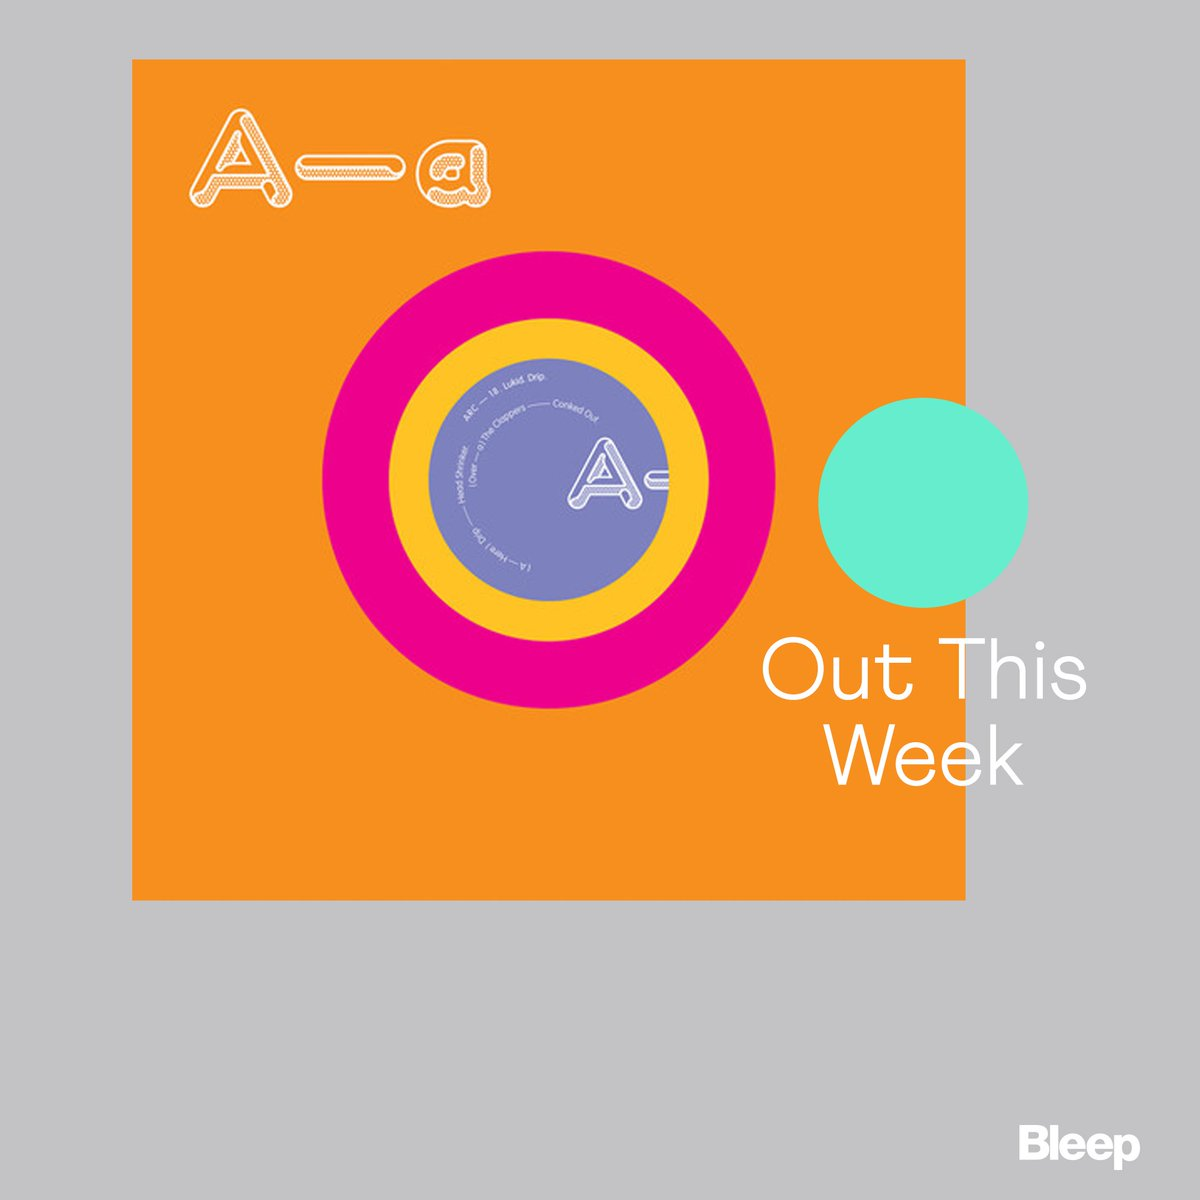 Out This Week: Lukid - Drip @Arcola_ bleep.com/release/126546… Next up in Warps sublabel Arcola series - Drip sees @Lukid turn in another set of strange and unique tracks that draws on grime, techno, tape electronics and UK bass without ever really sounding like any of them.